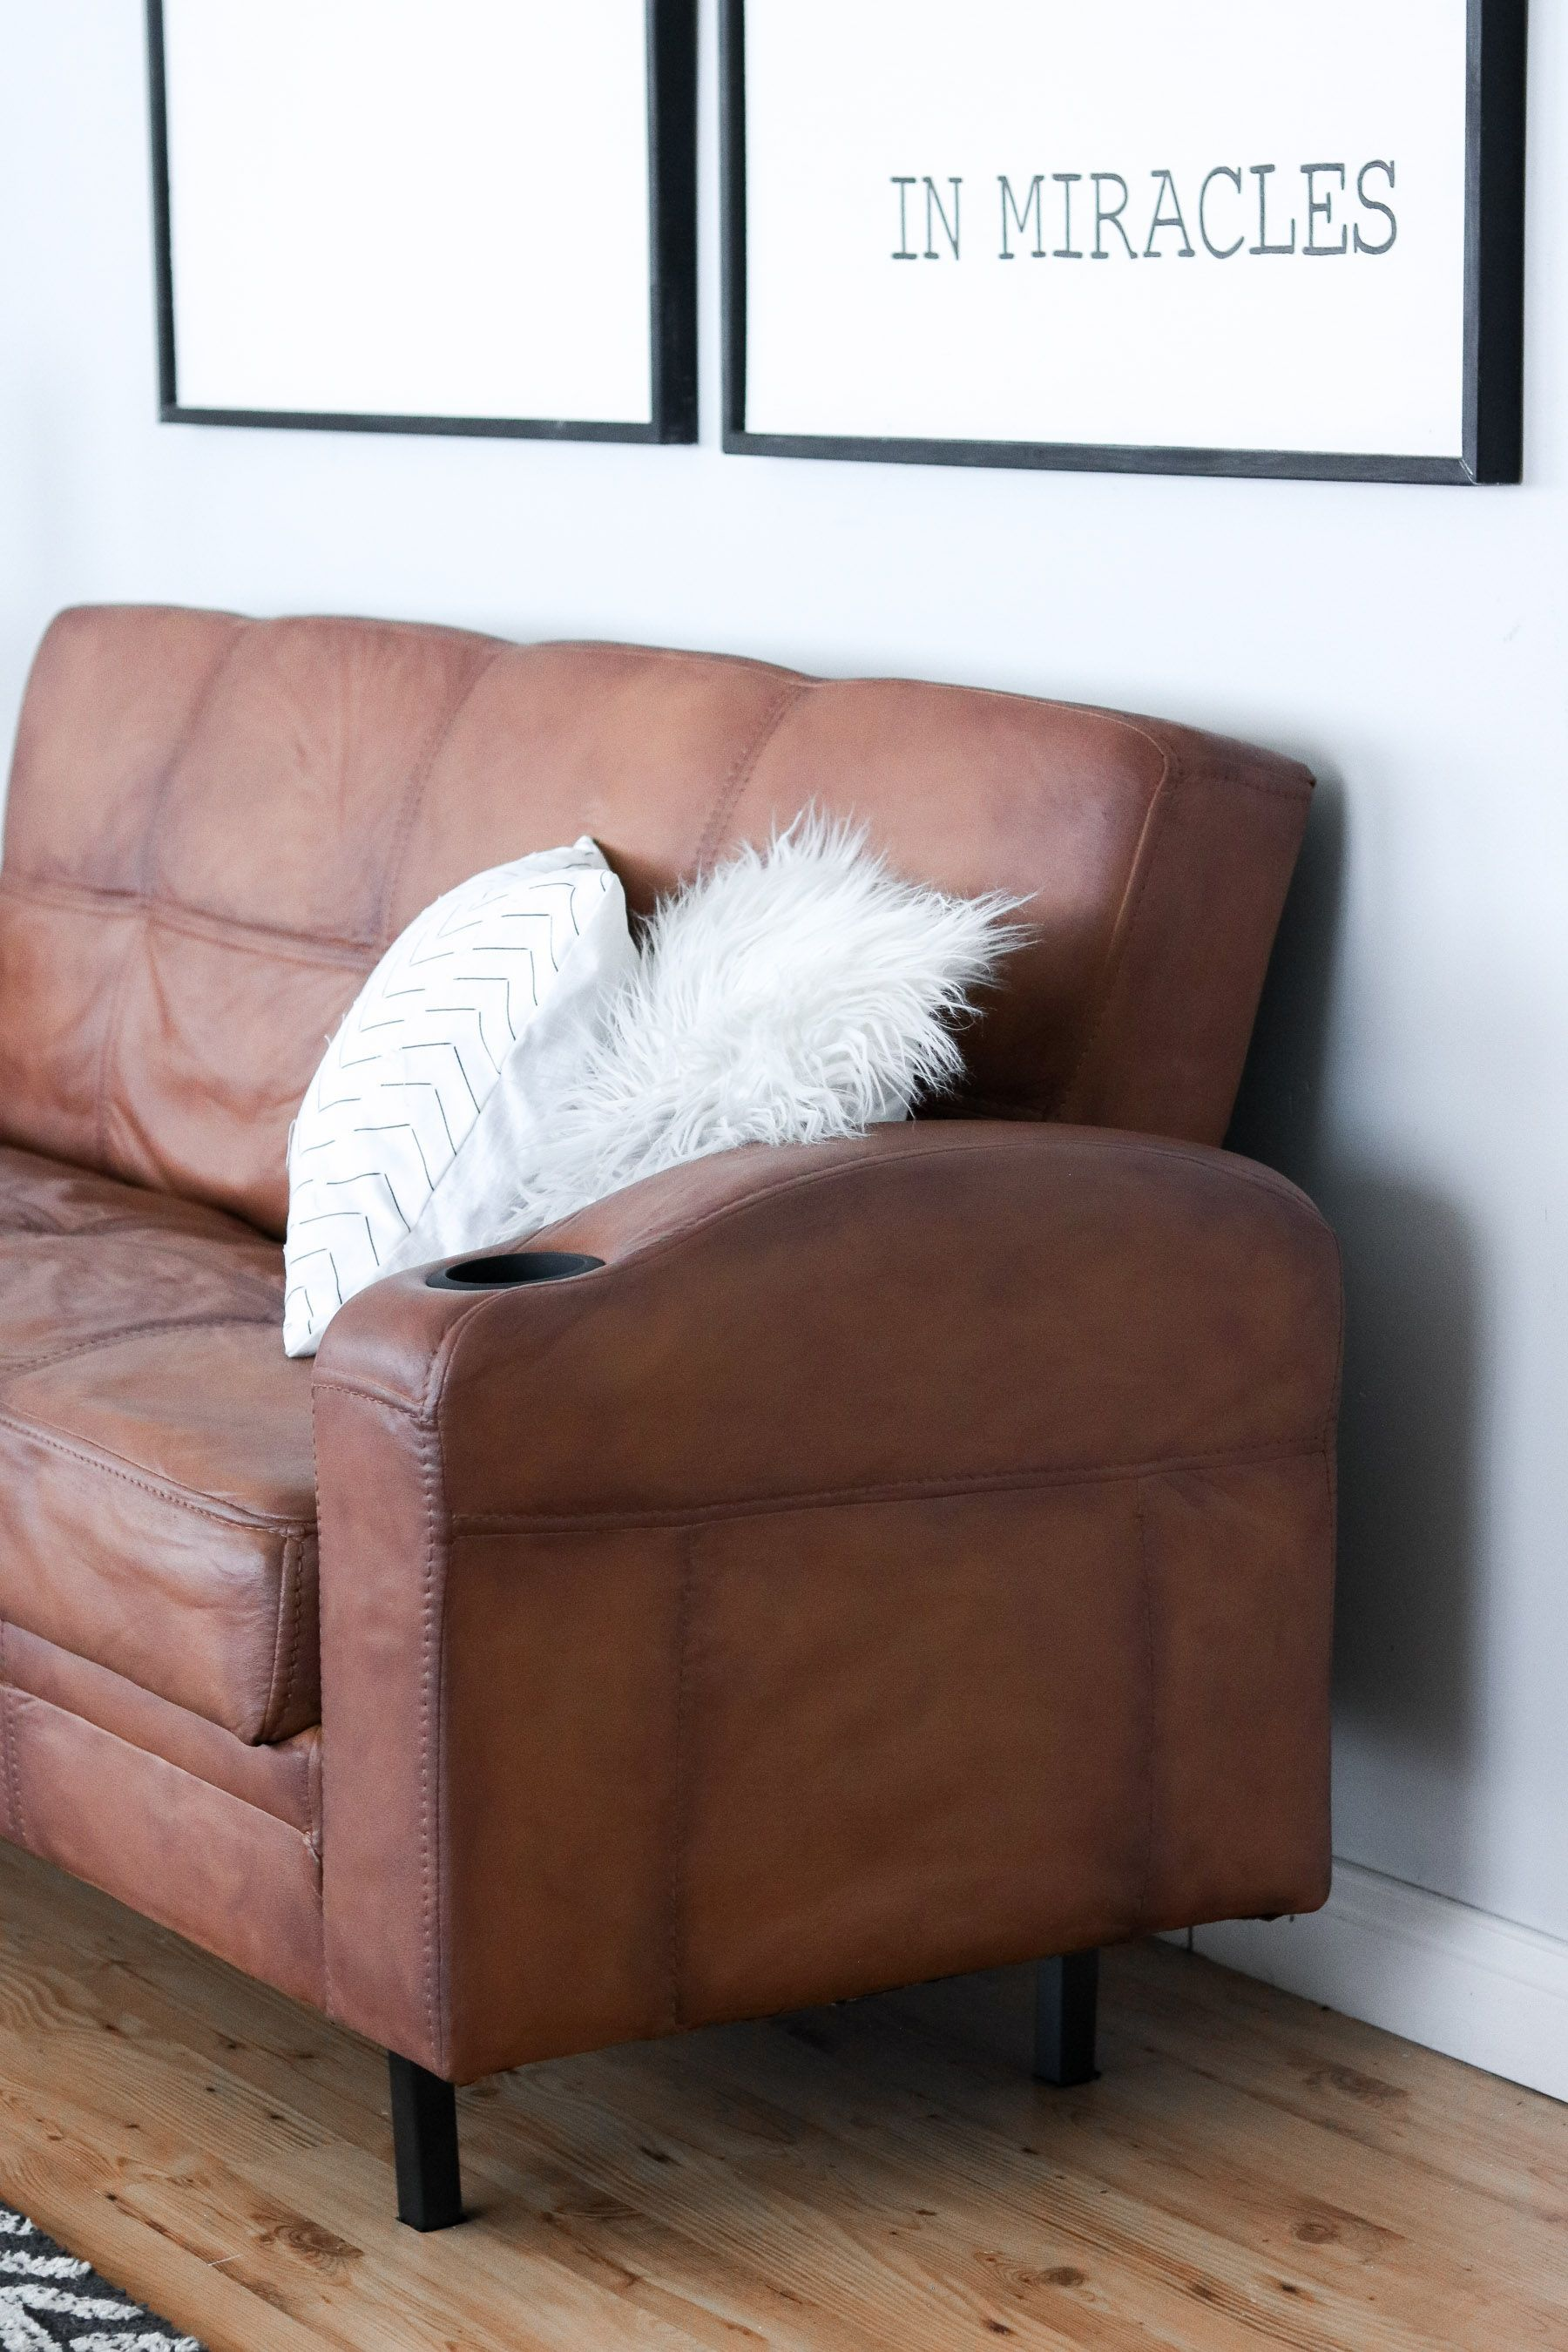 How To Paint Your Microfiber Couch To Look Like Real Leather Add 3 Tablepoons Of Fabric Softener To 1 2 Microfiber Couch Leather Couch Repair Painted Couch